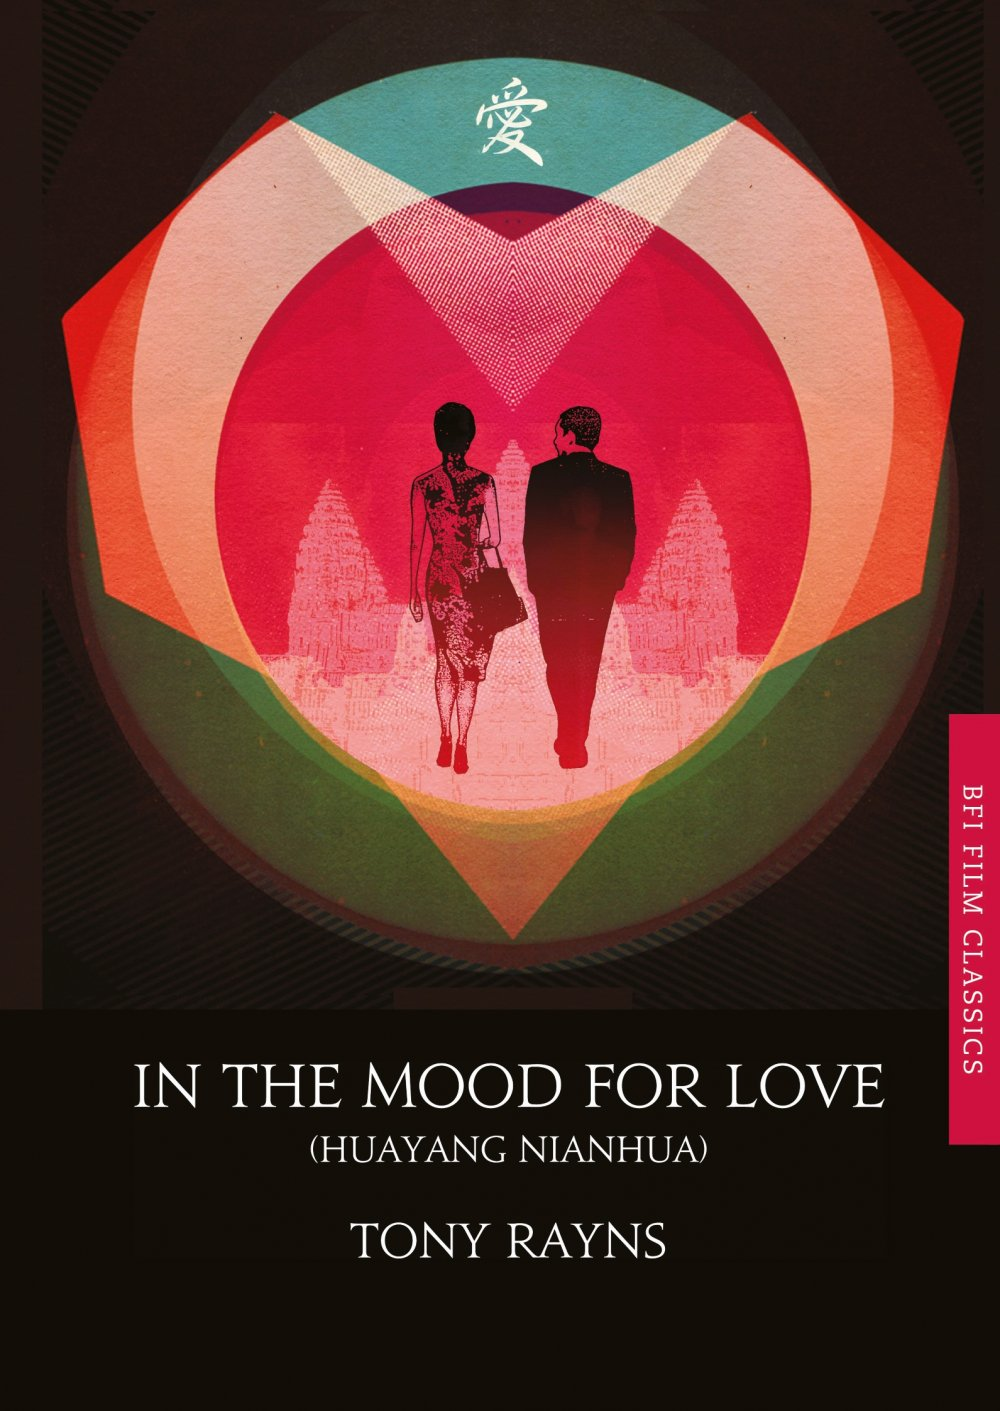 In the Mood for Love (BFI Film Classics) by Tony Rayns